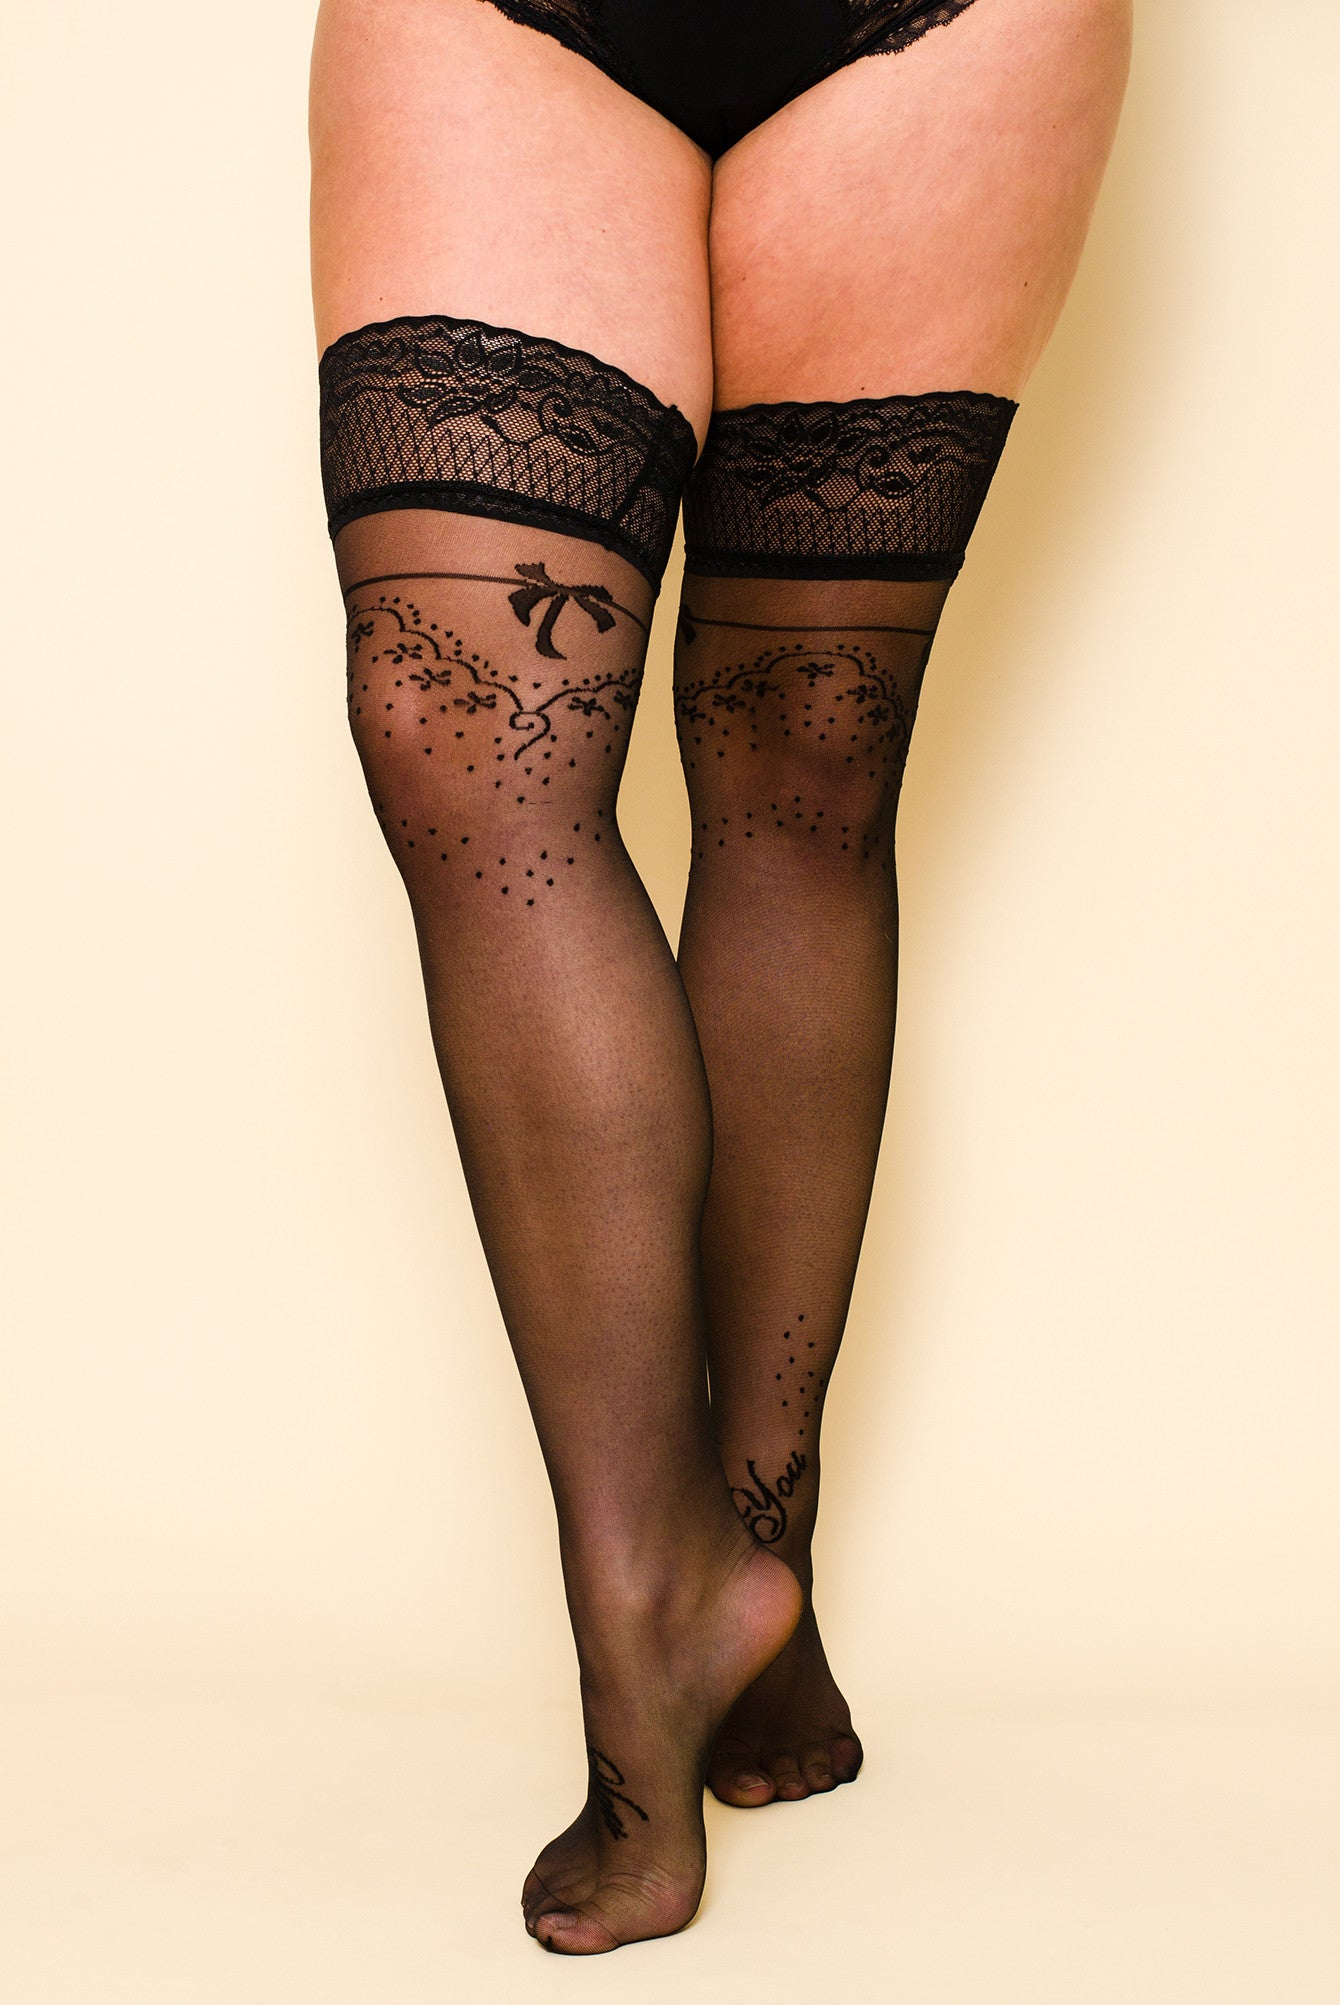 SHEER BLACK ITALIAN EMBROIDERED NICOLA HOLD-UPS STOCKINGS